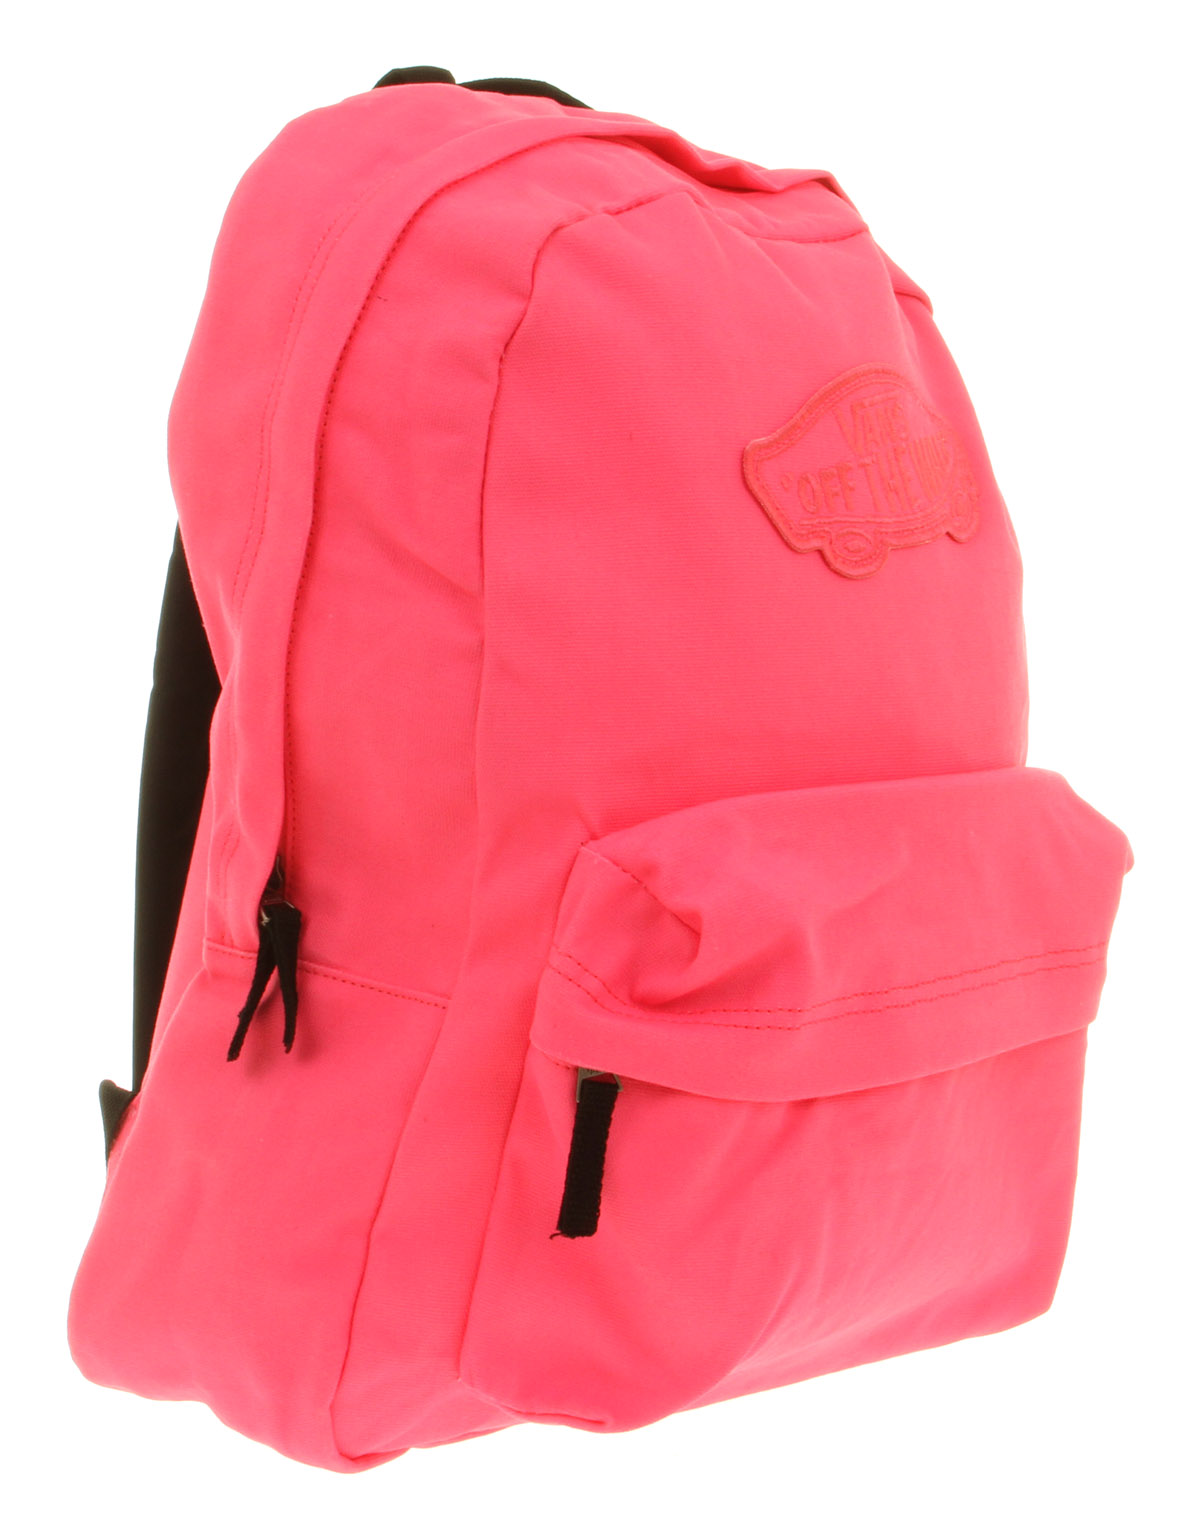 326f0074a9 vans bookbag Pink sale   OFF59% Discounts